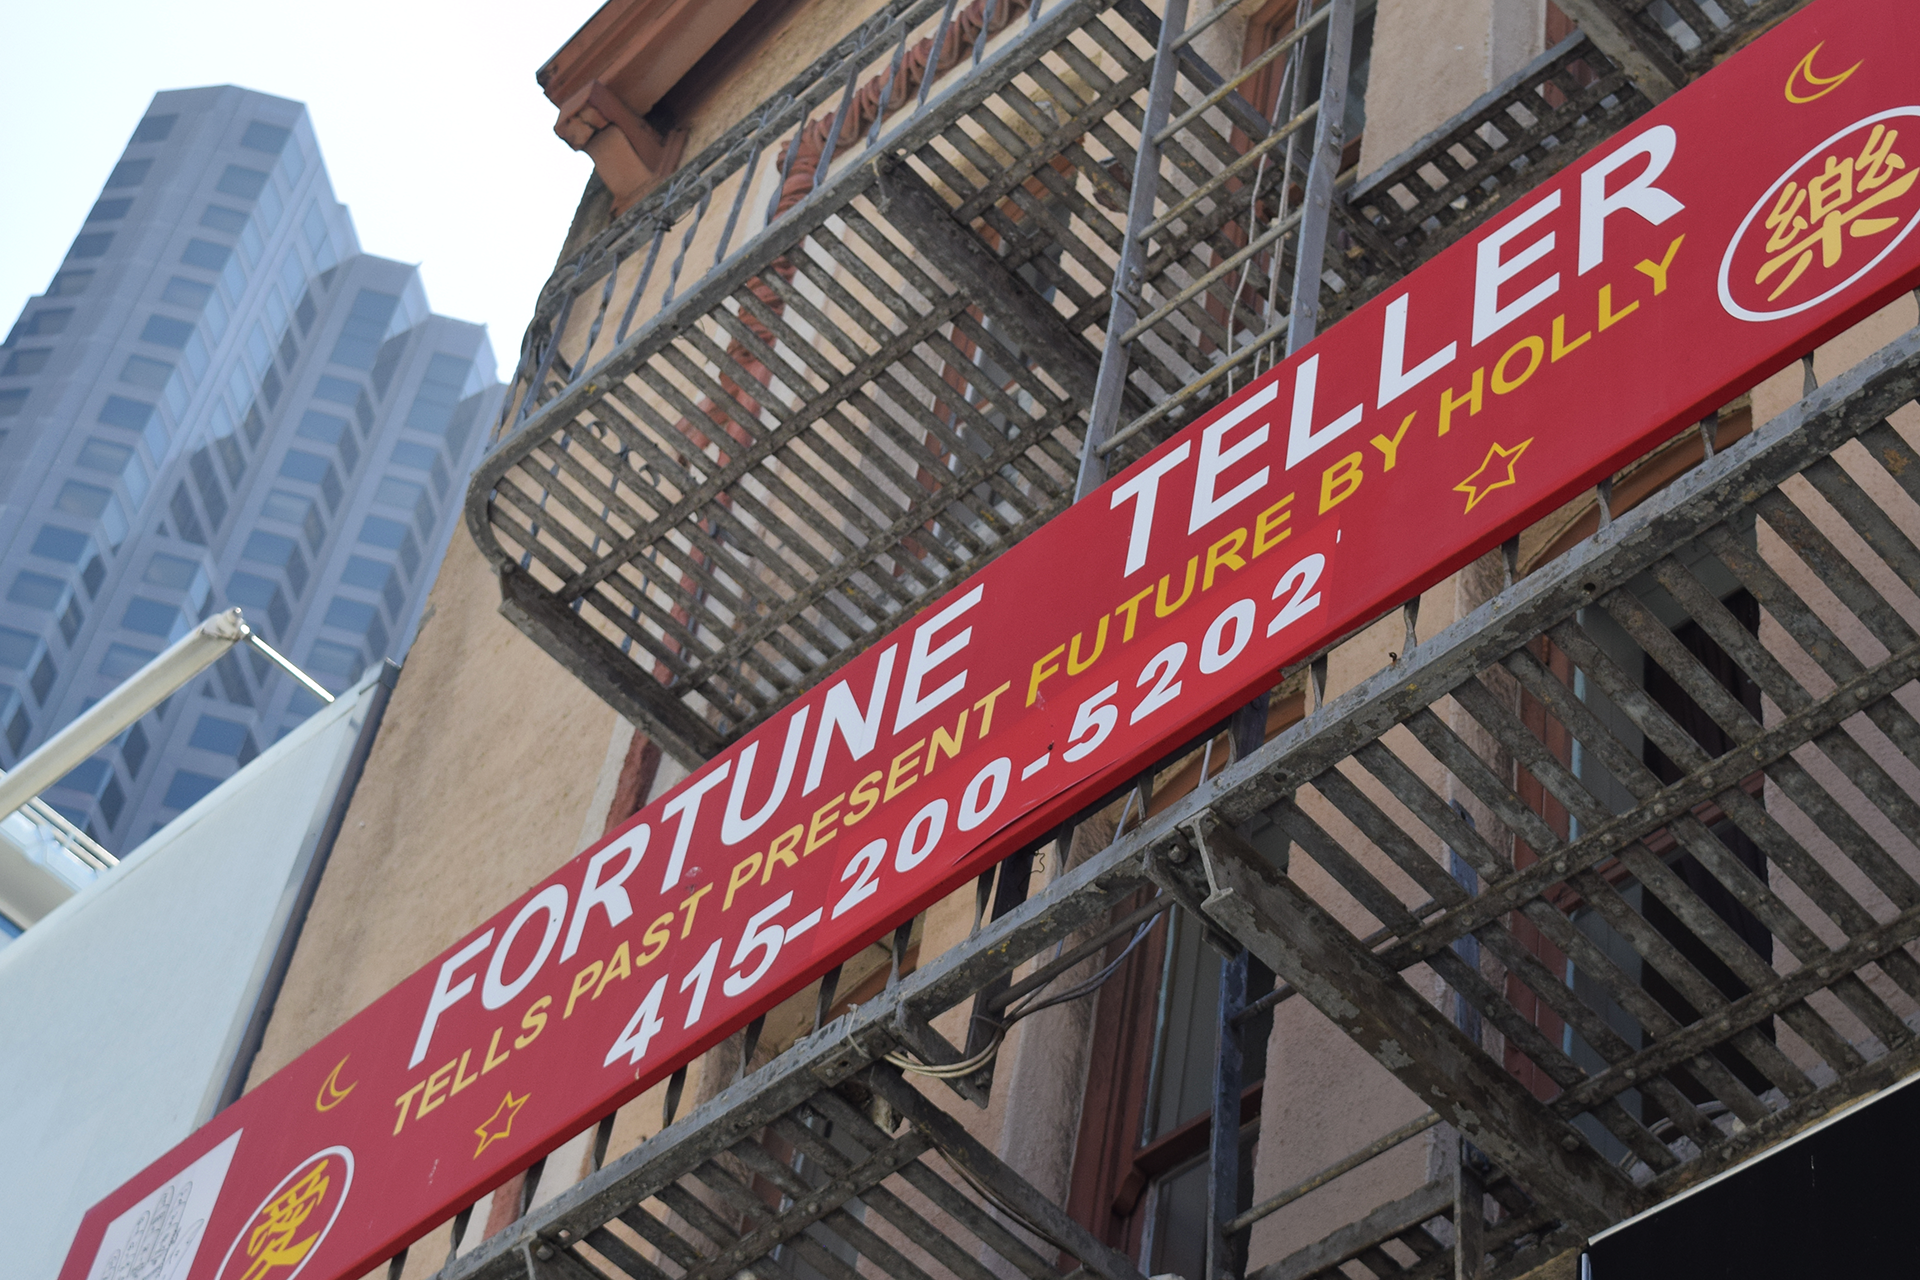 A sign advertises fortunetelling services in San Francisco Carly Severn/KQED